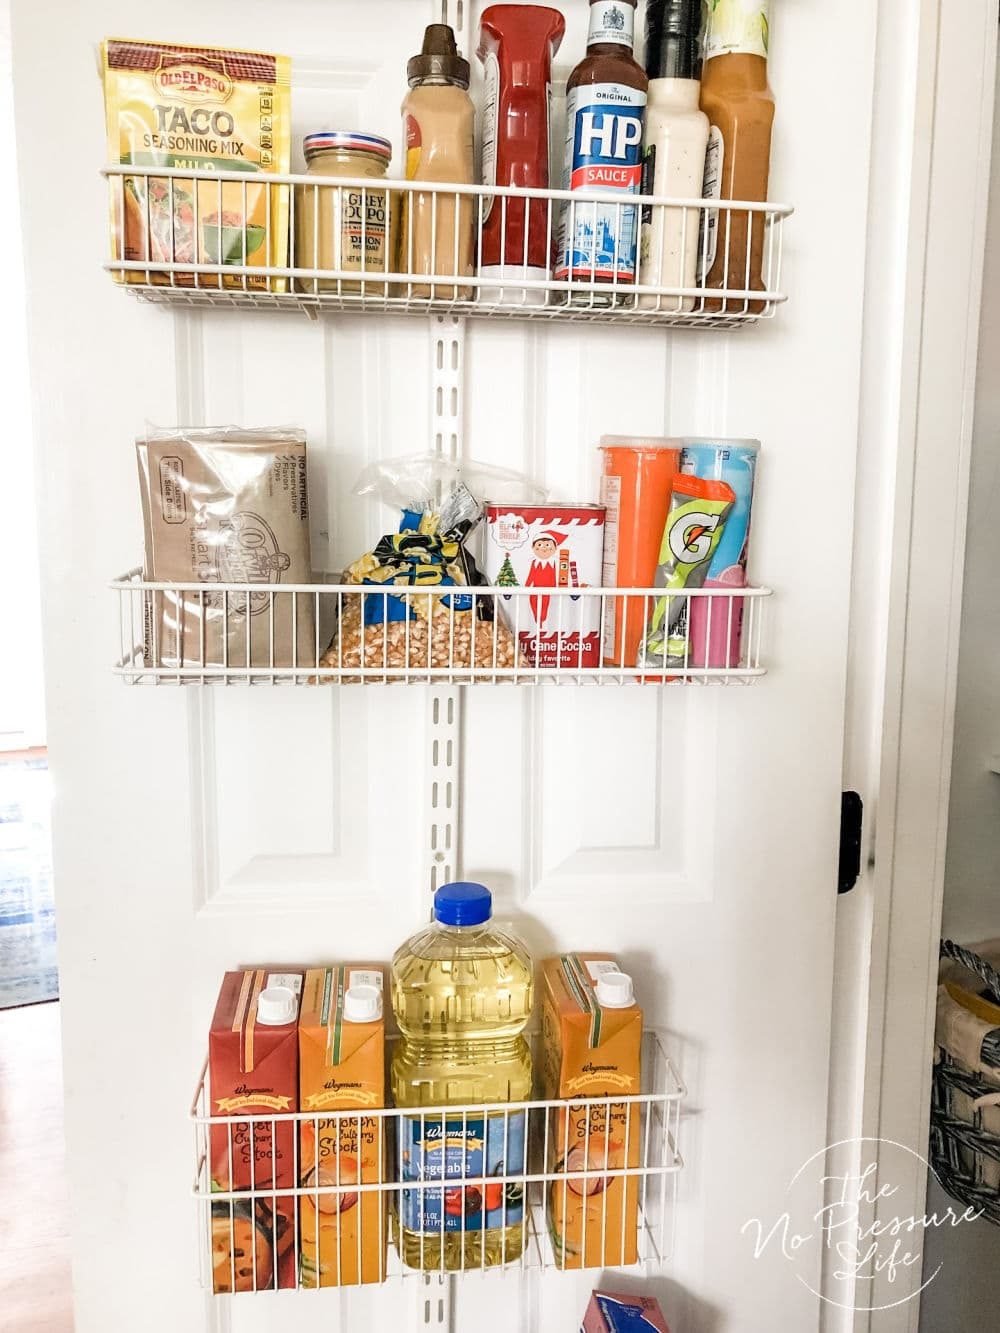 Pantry Door Organizer - Elfa storage system for canned food and more